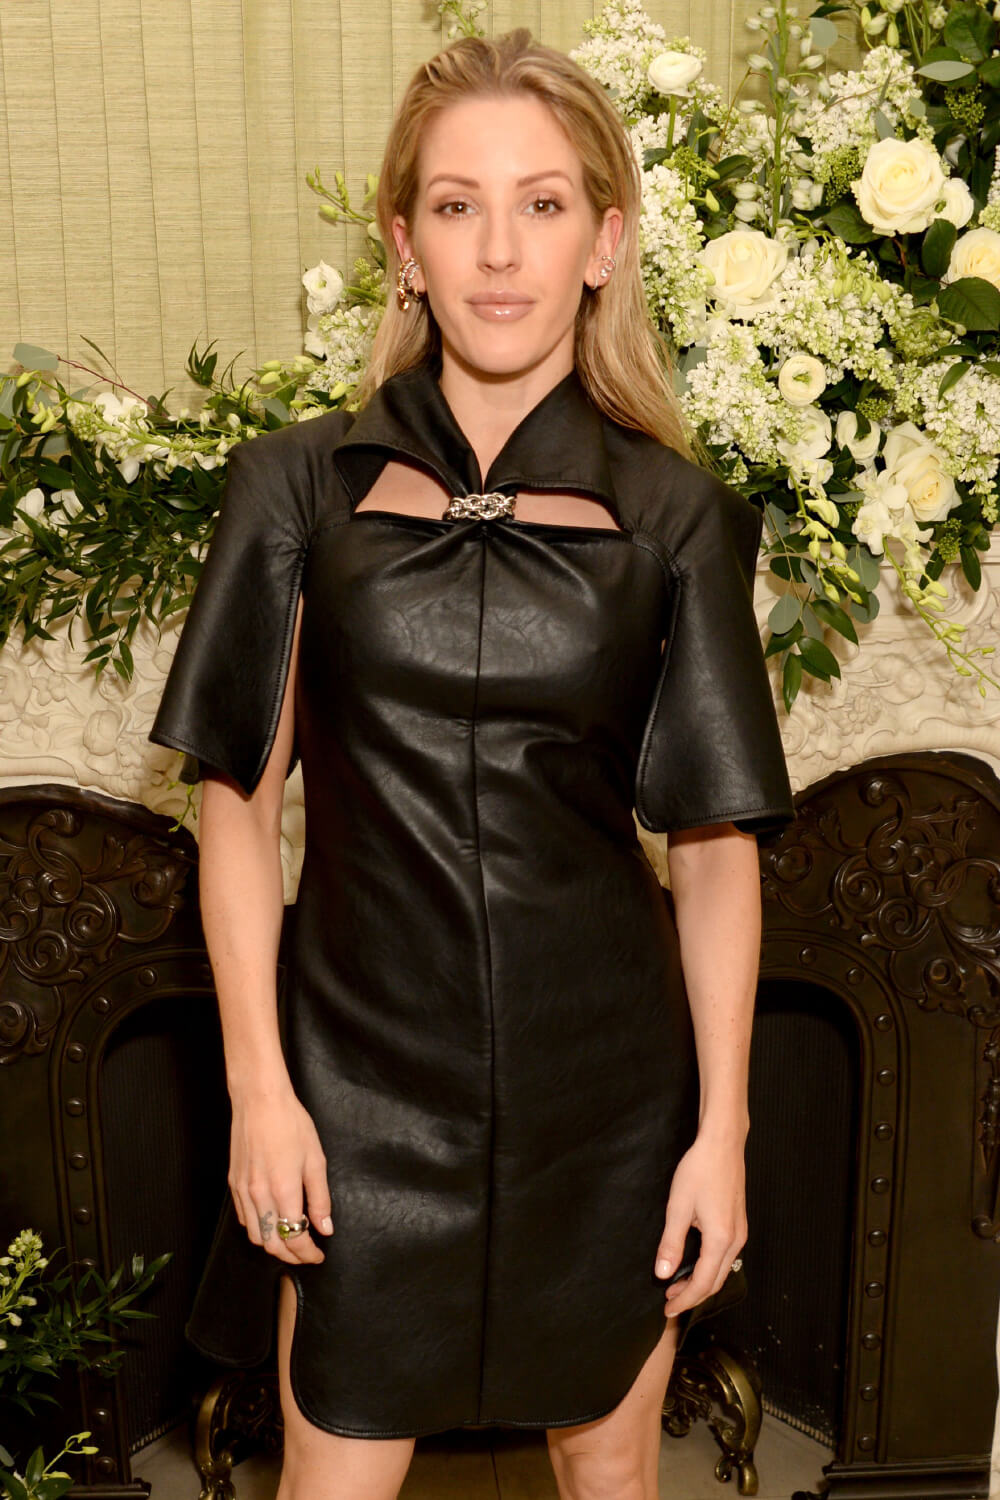 Ellie Goulding attends BAFTA Vogue x Tiffany Fashion and Film afterparty